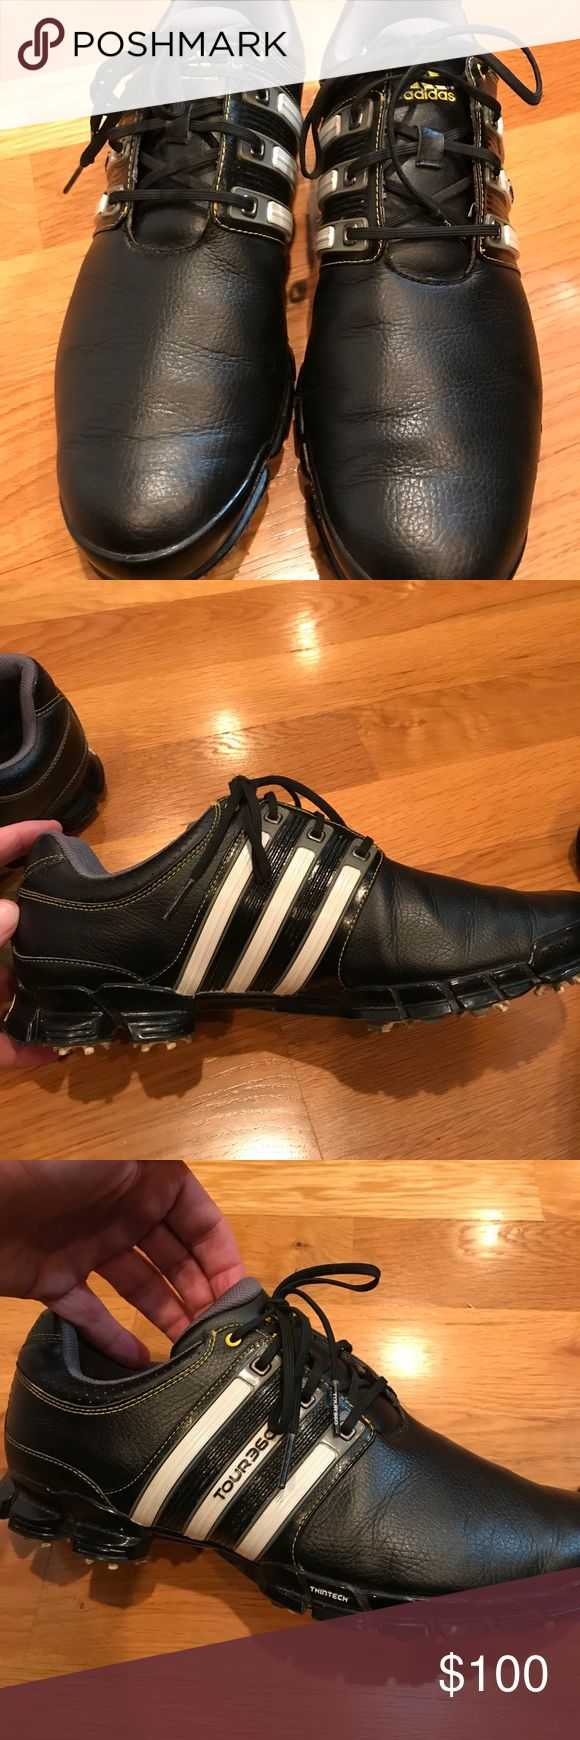 Adidas Black Tour360 Golf Shoes Here is another pair of black golf shoes in great condition! Comment if you have any questions! adidas Shoes Athletic Shoes